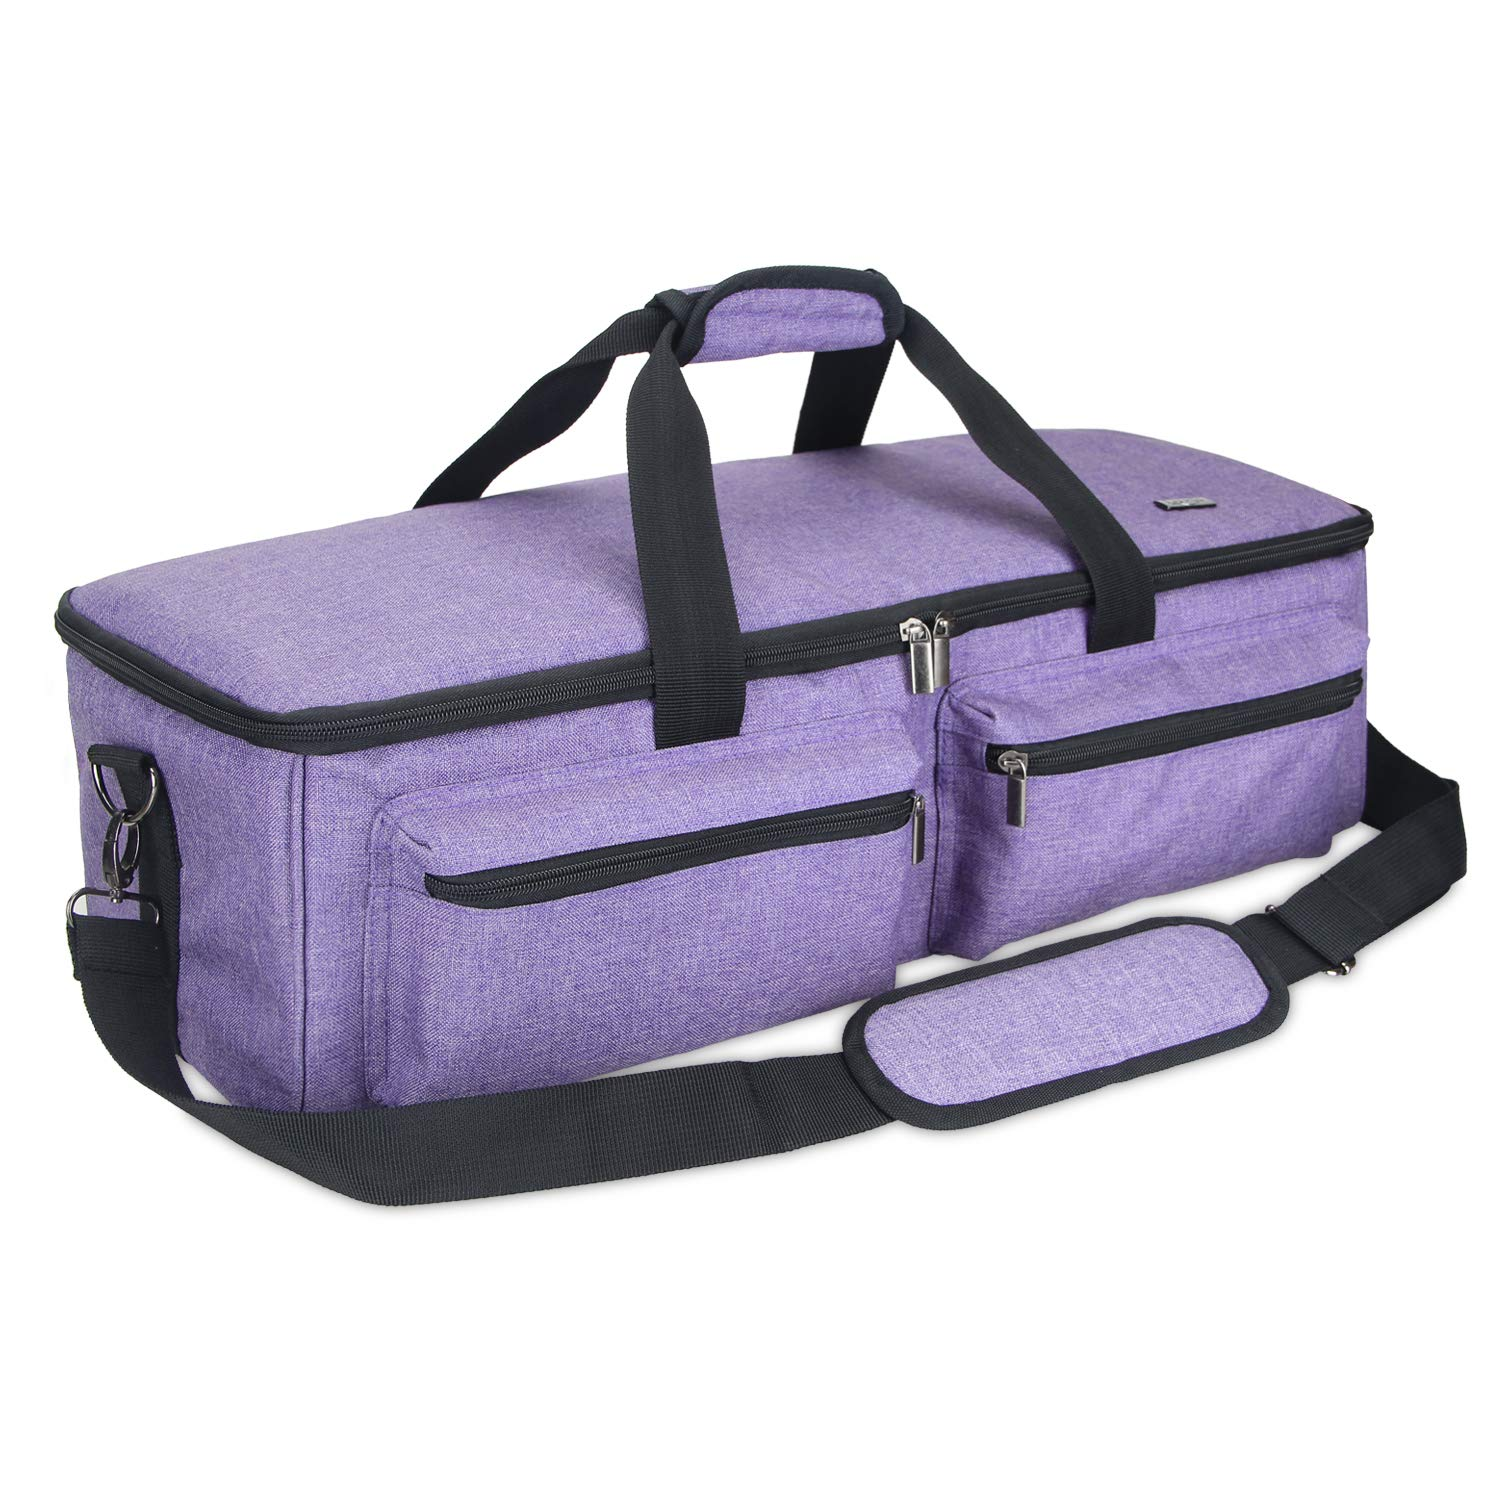 Luxja Carrying Bag for Silhouette Cameo 3, Tote Bag for Silhouette Cameo 3 and Supplies, Purple